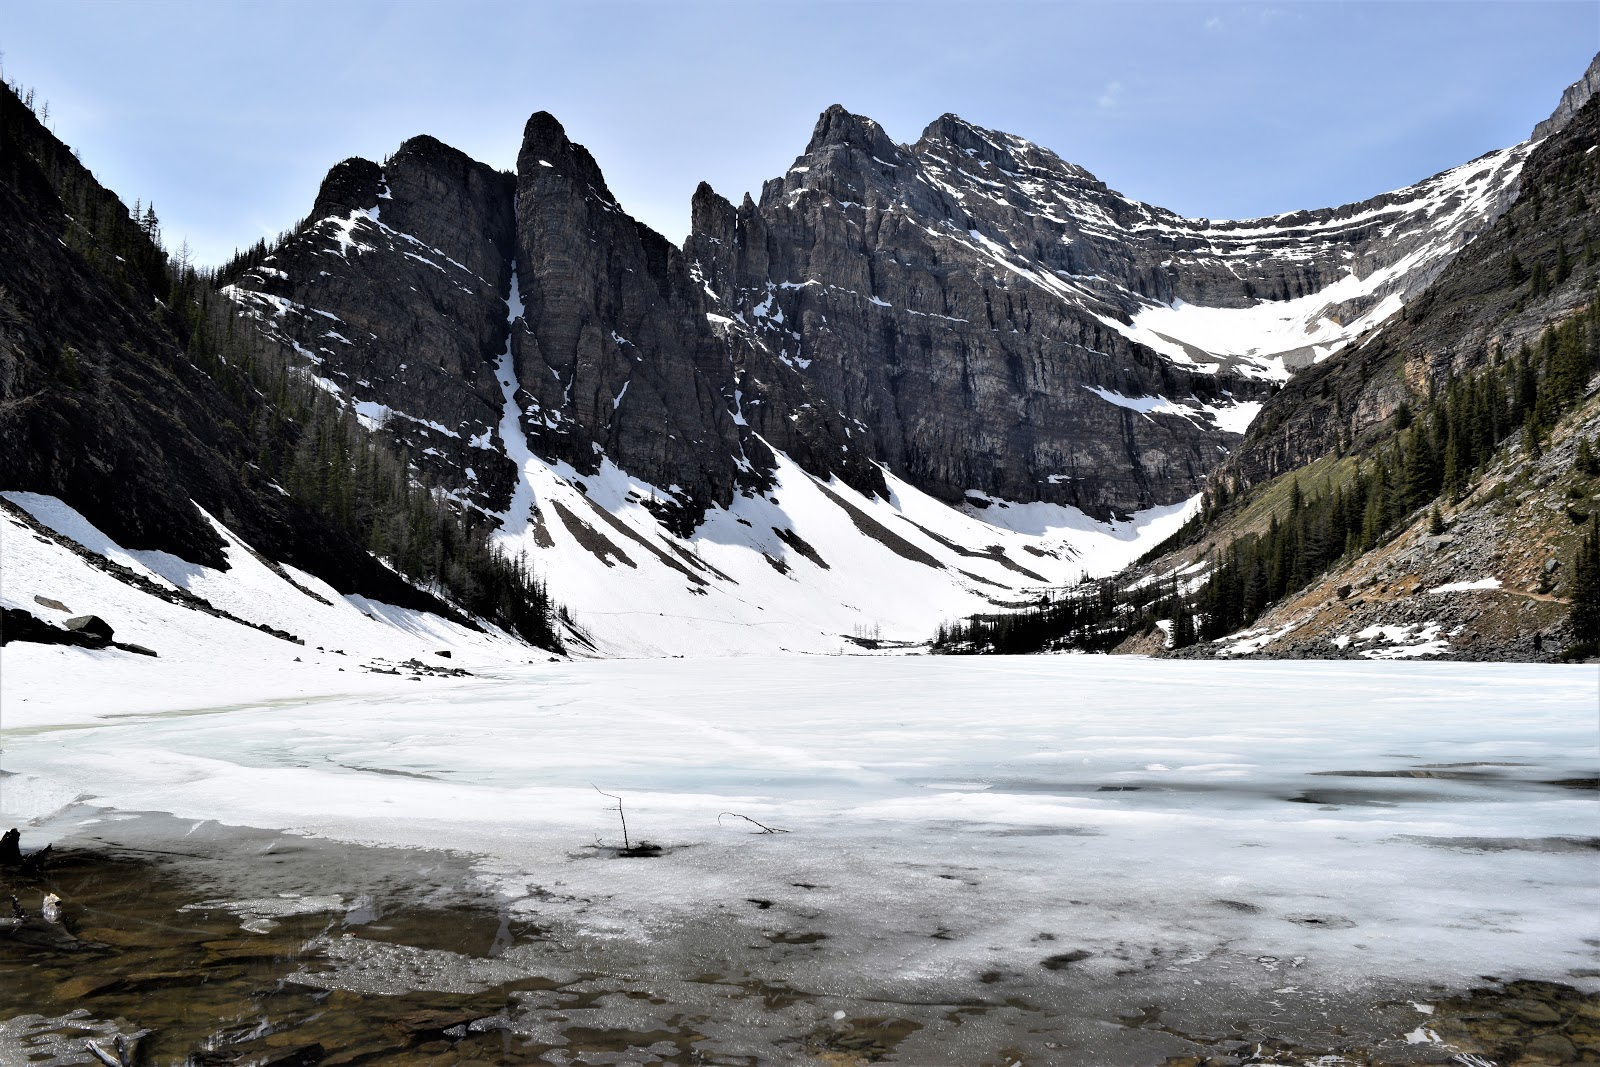 Lake Agnes frozen over in June